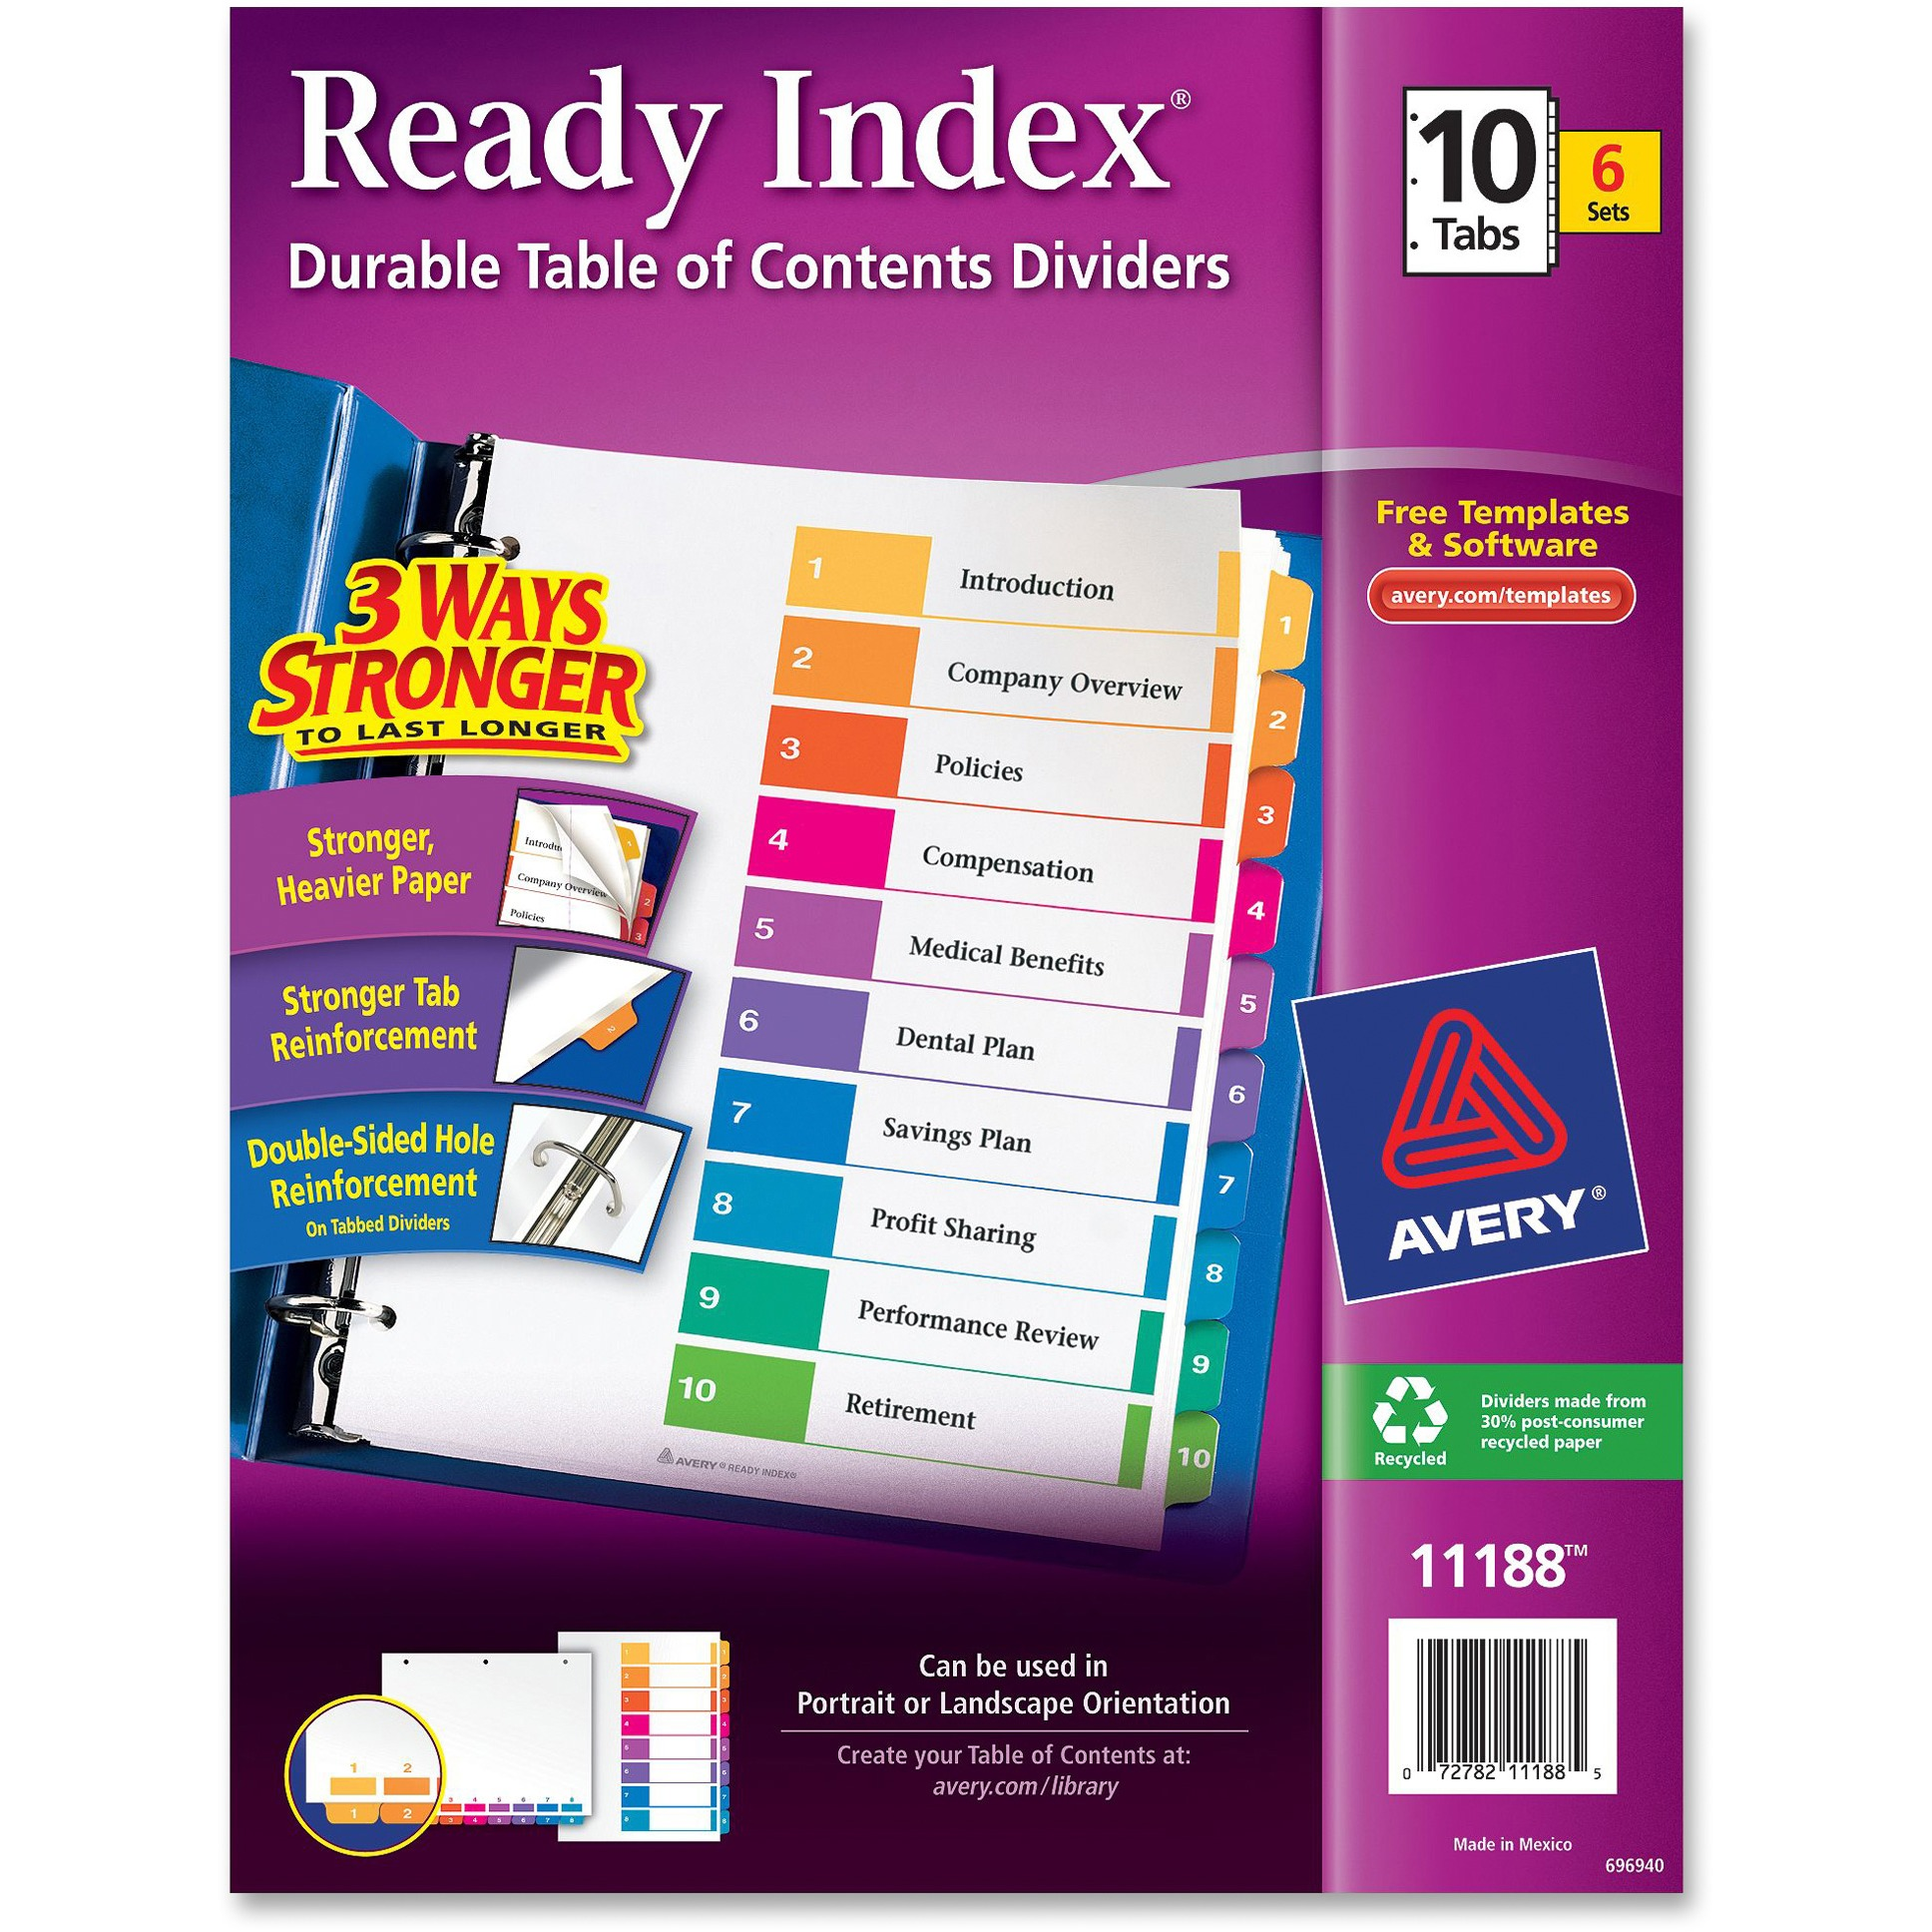 Avery Ready Index Table of Contents Dividers, 10 Tab, Assorted Colors, 6 Count (11188)